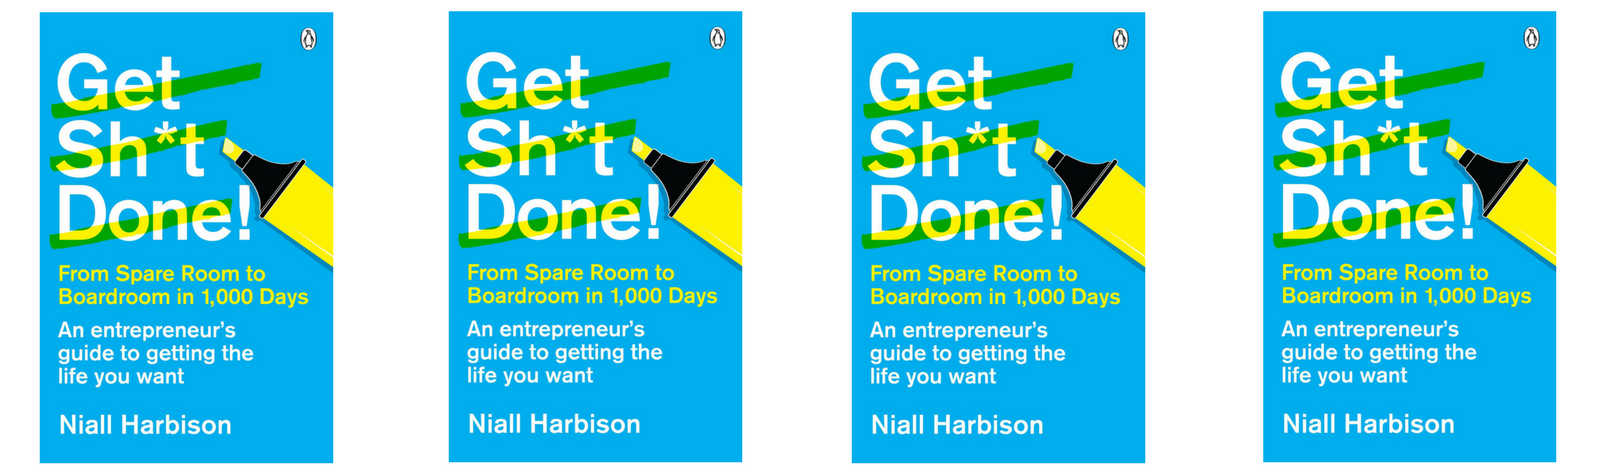 READ THIS: Get Shit Done